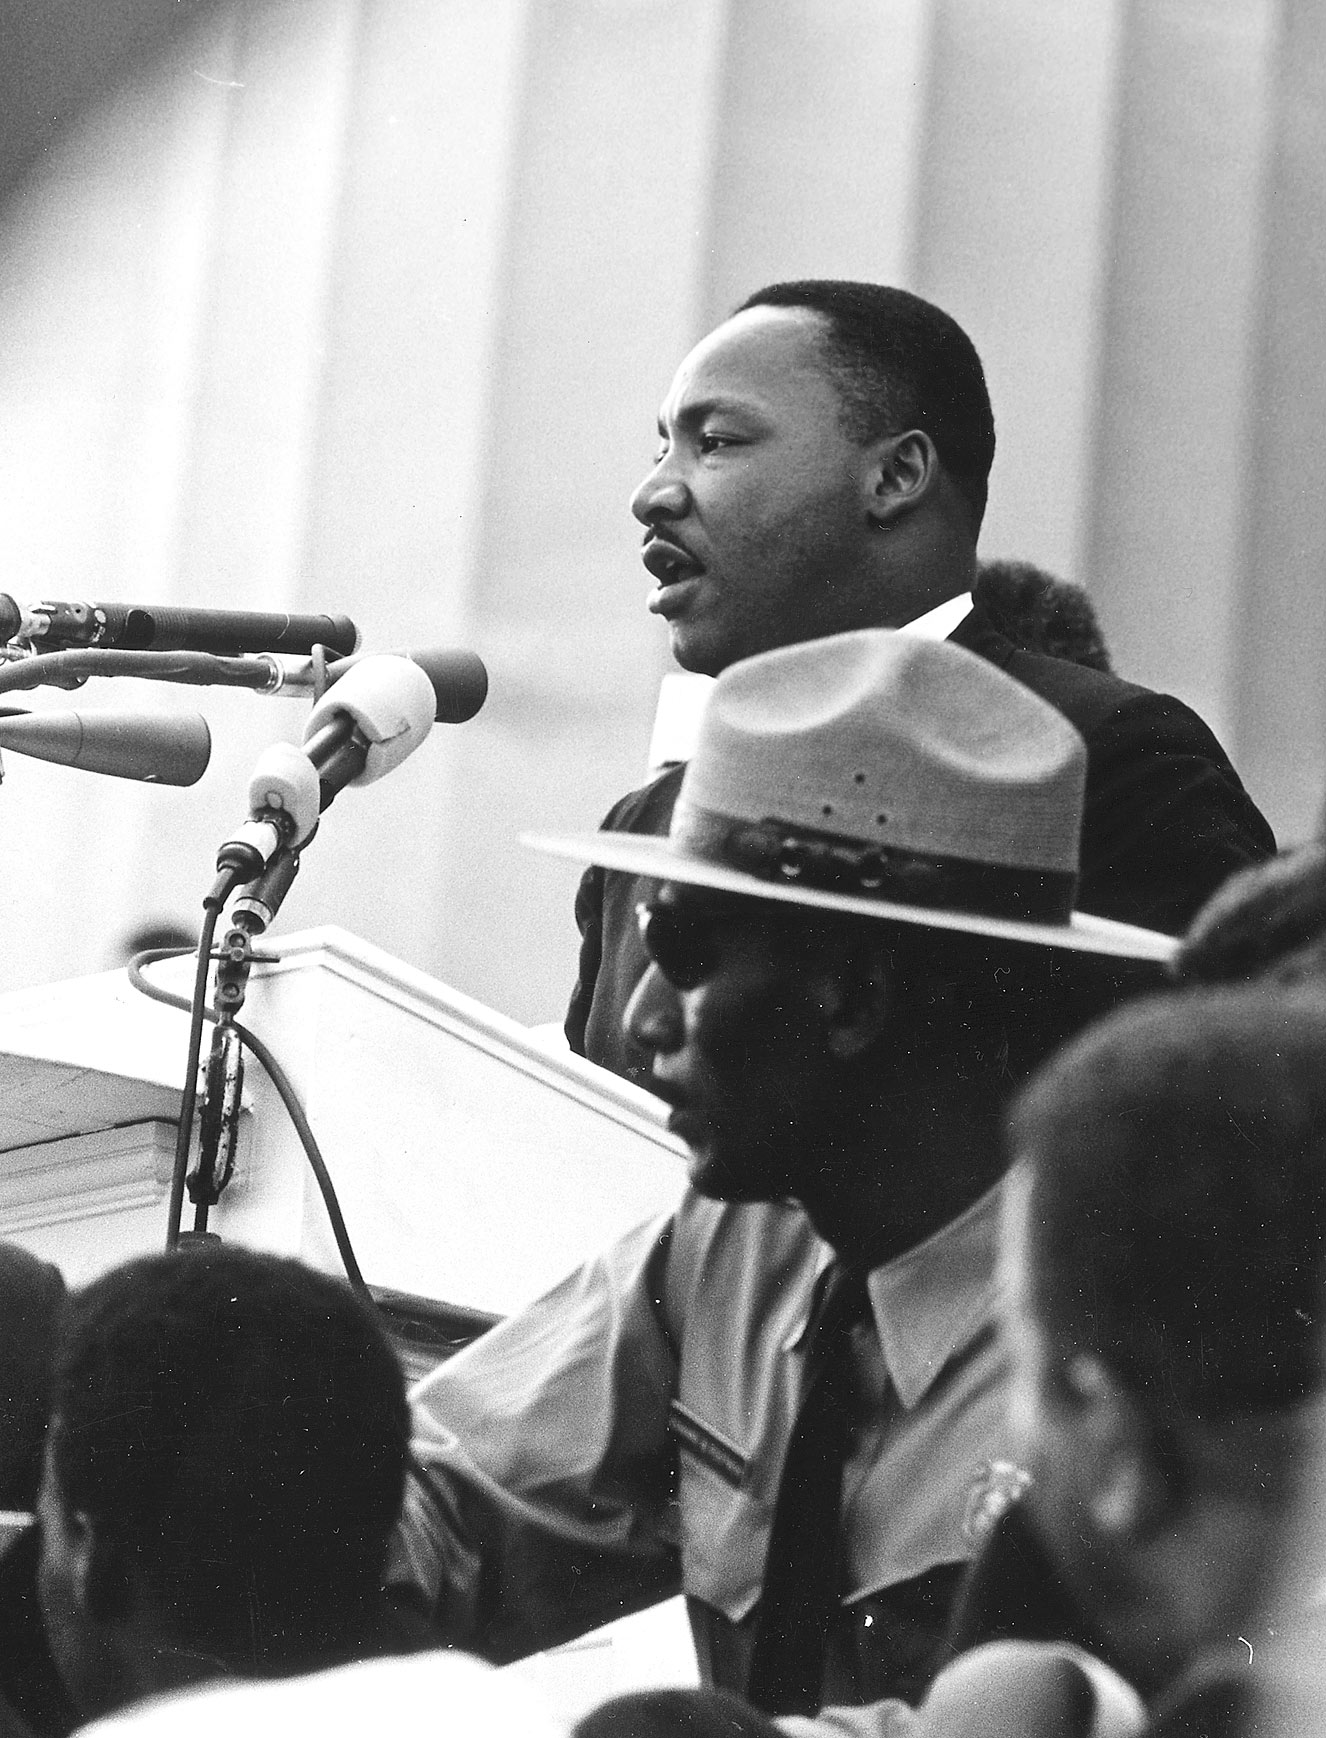 The Rev. Martin Luther King Jr. speaks at the March on Washington, Aug. 28, 1963. (Rowland Scherman / National Archives)